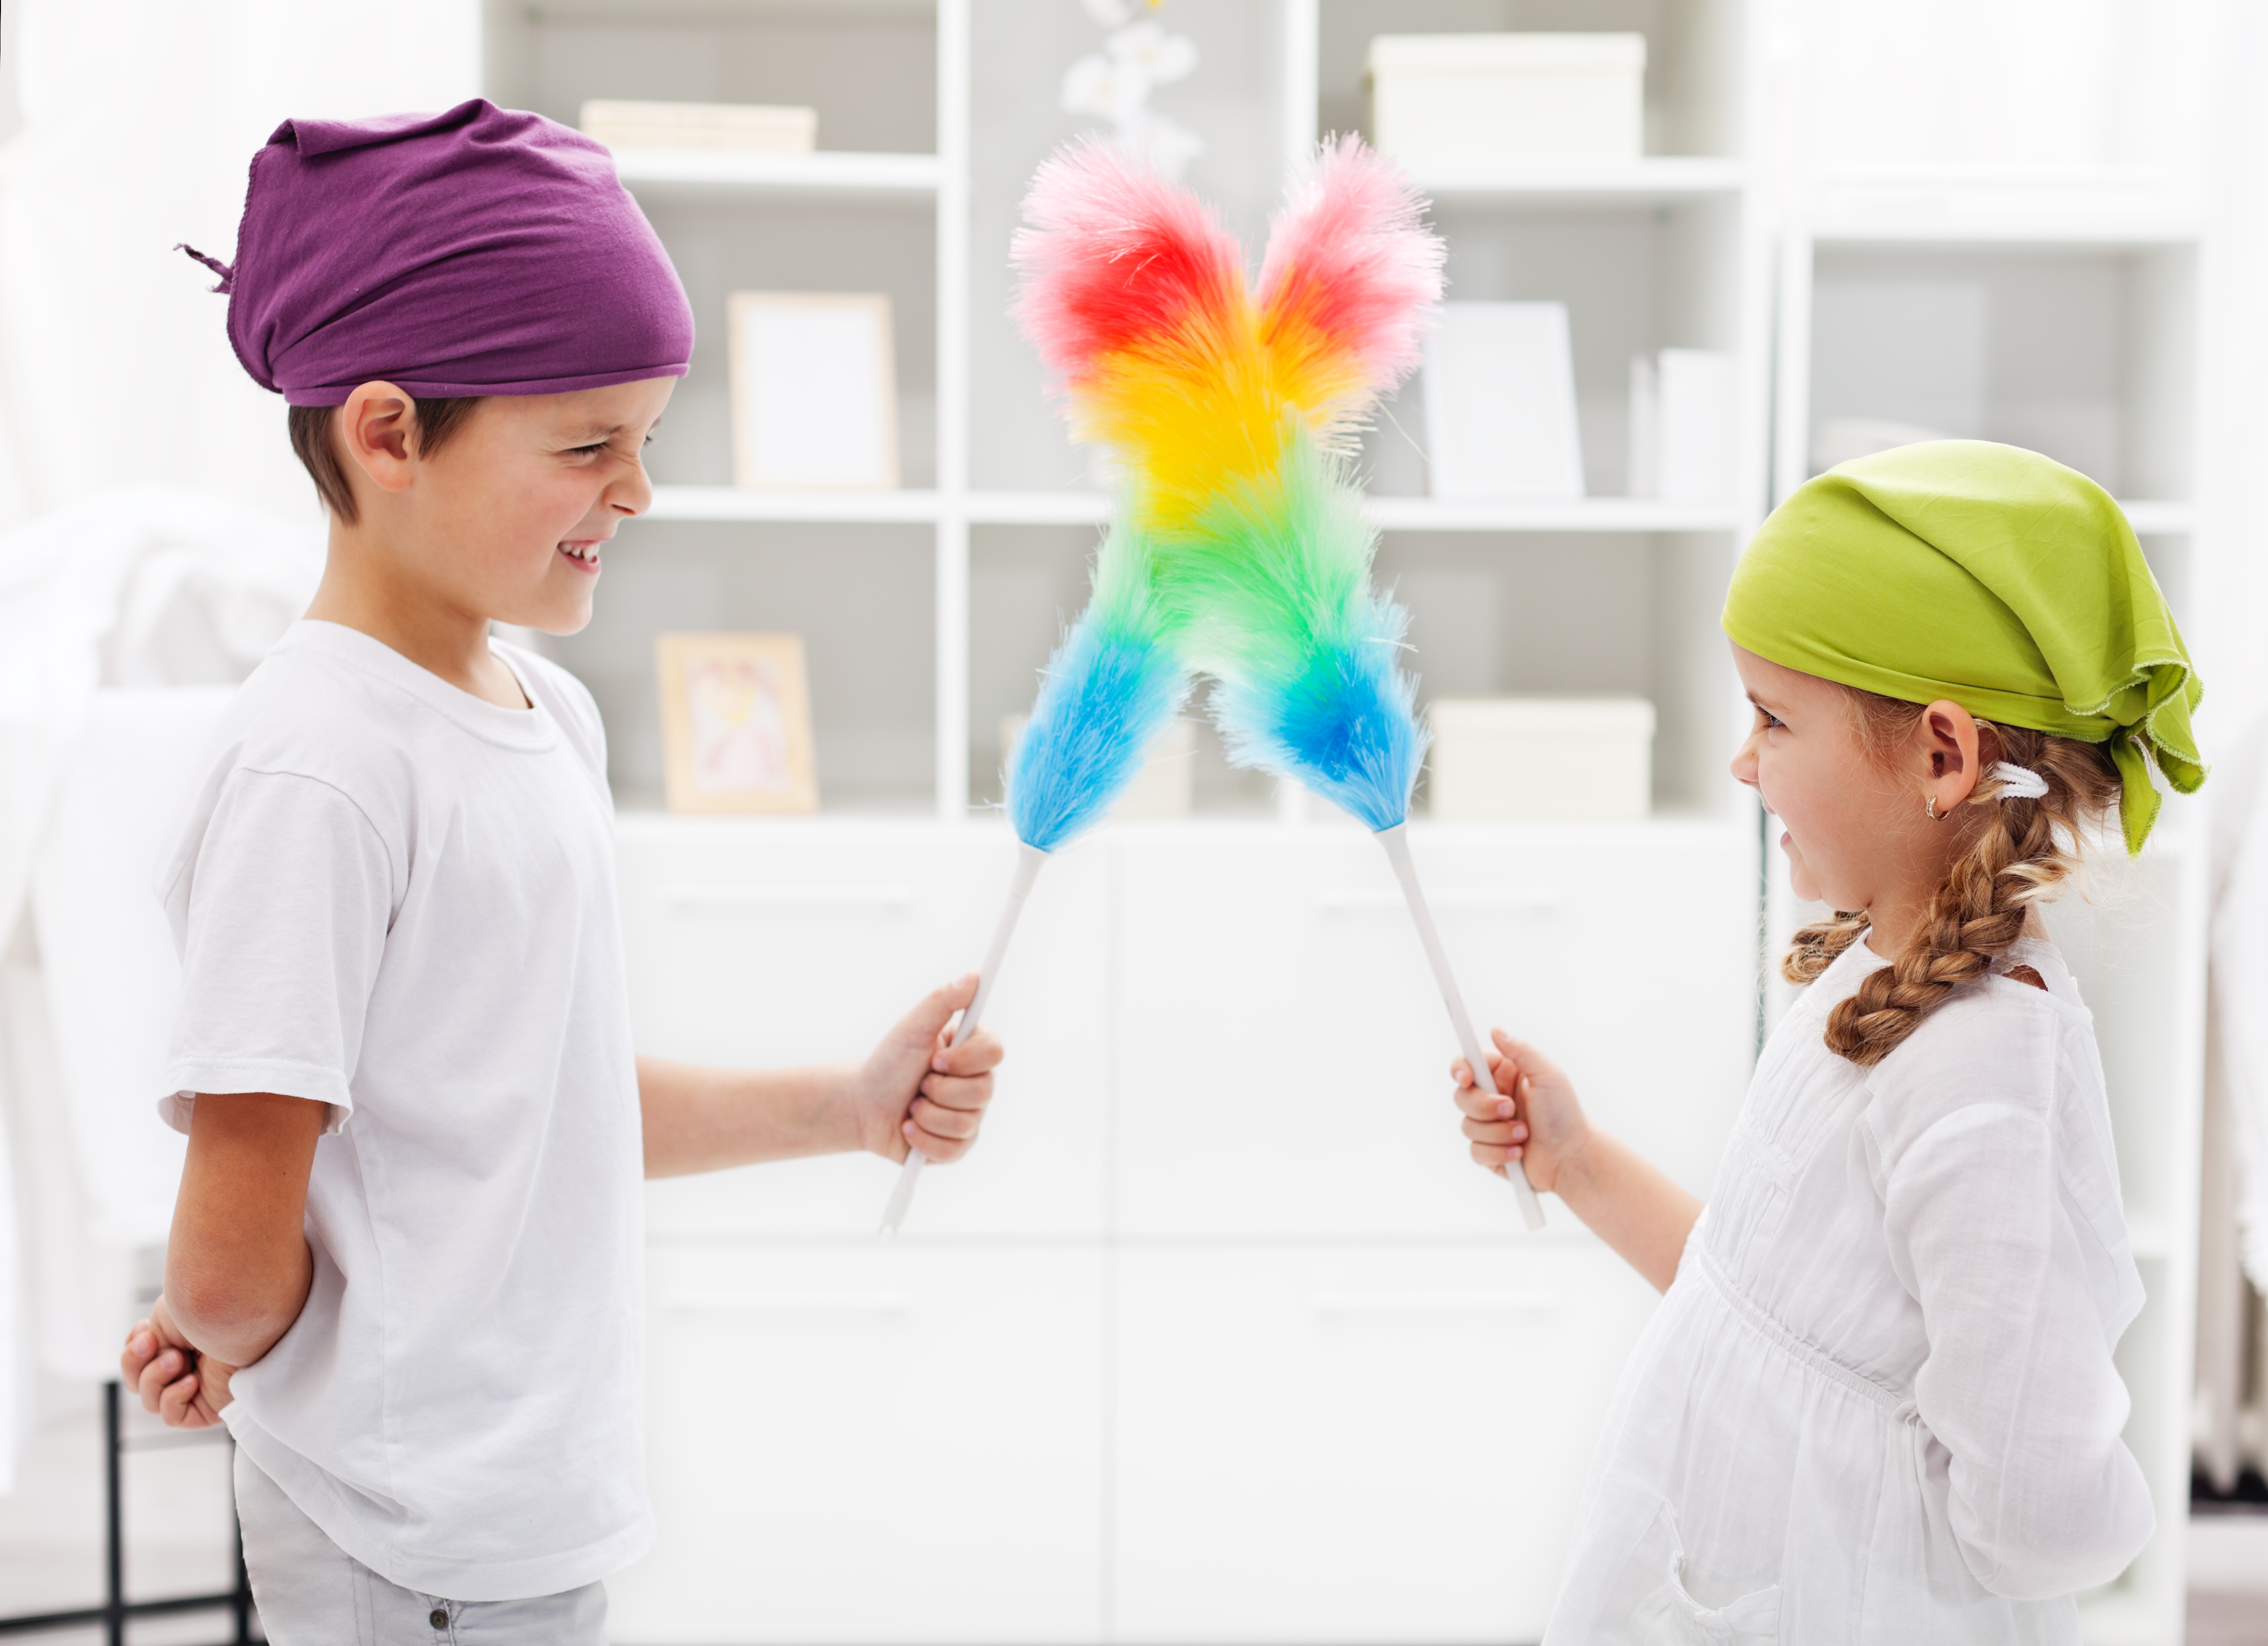 Here are the 4 tips to get your kid to clean their rooms, and keep them clean.